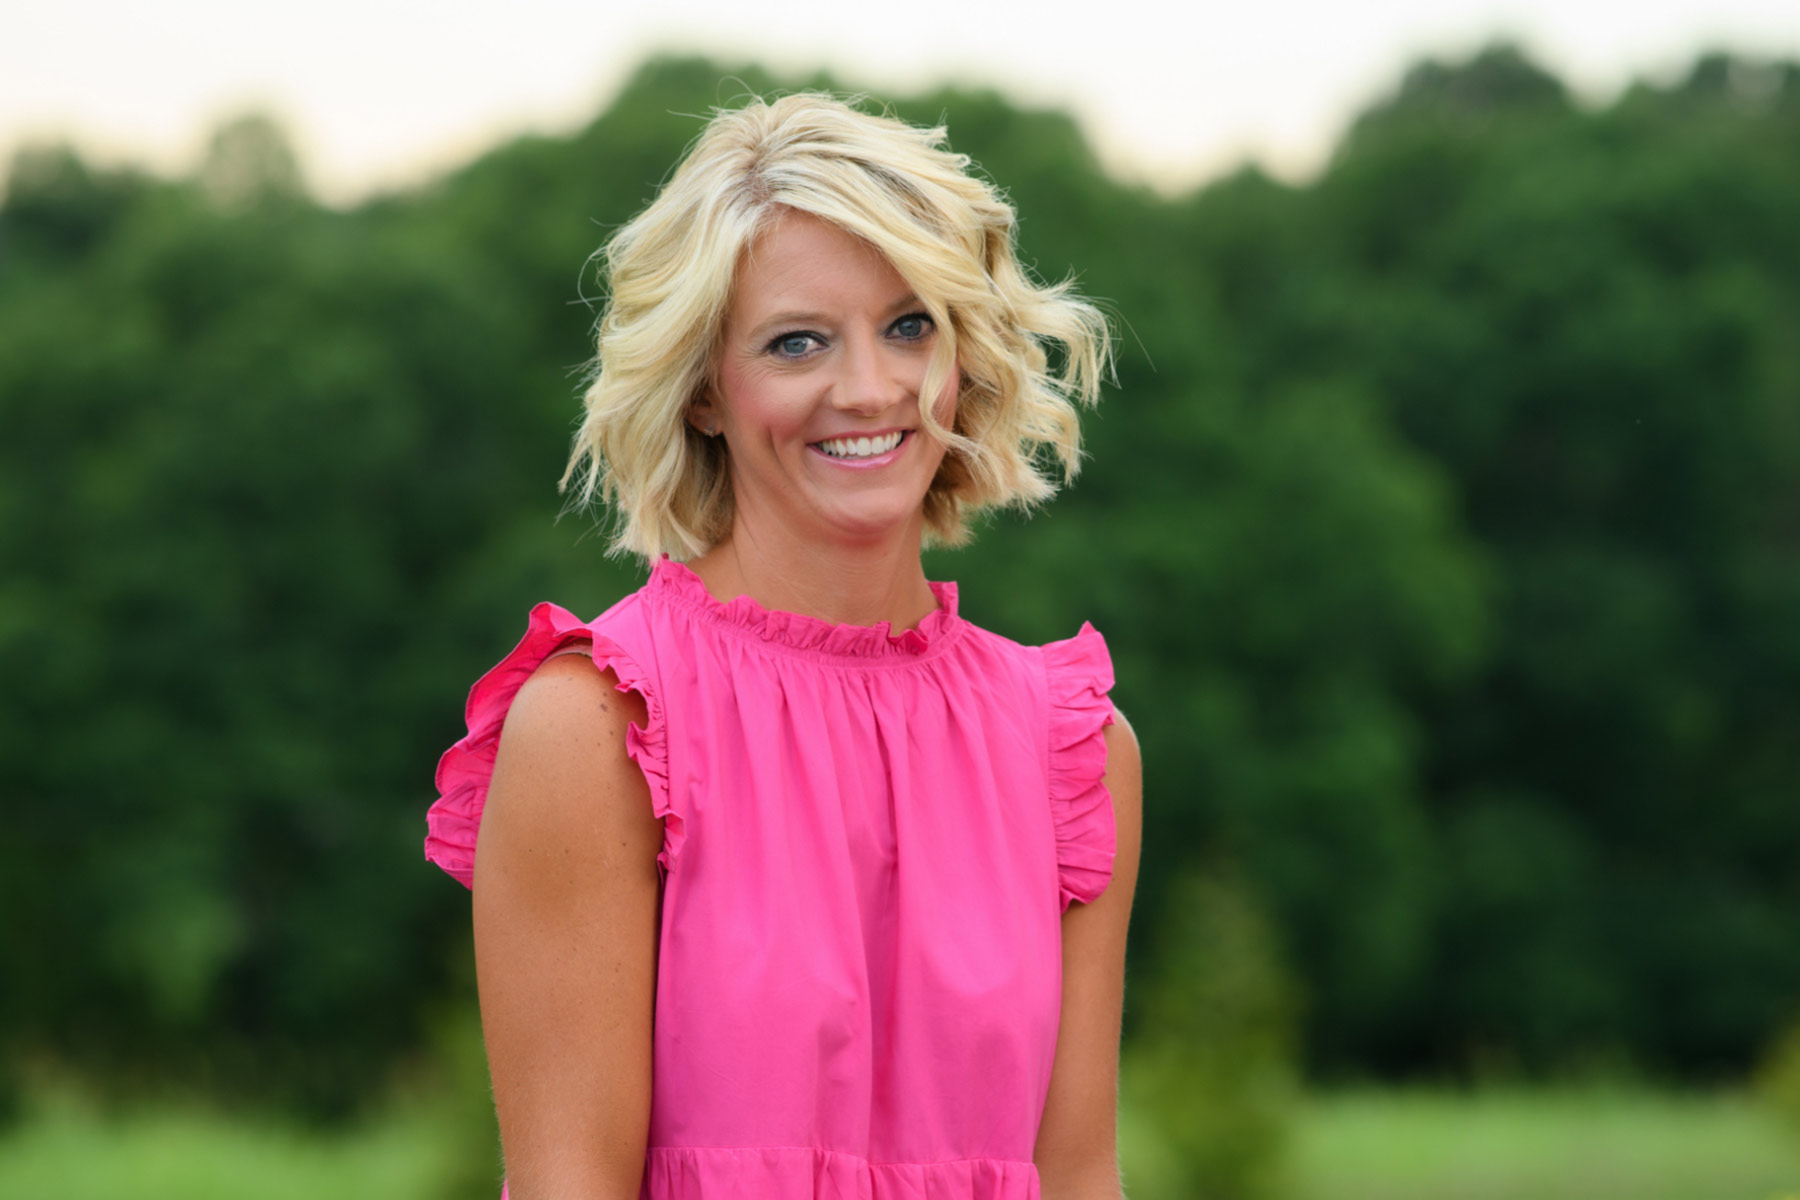 Angela King, a young-looking middle-aged woman with short, wavy blonde hair, poses for a portrait in an outdoor setting. She is wearing a ruffly pink sleeveless dress and smiling.